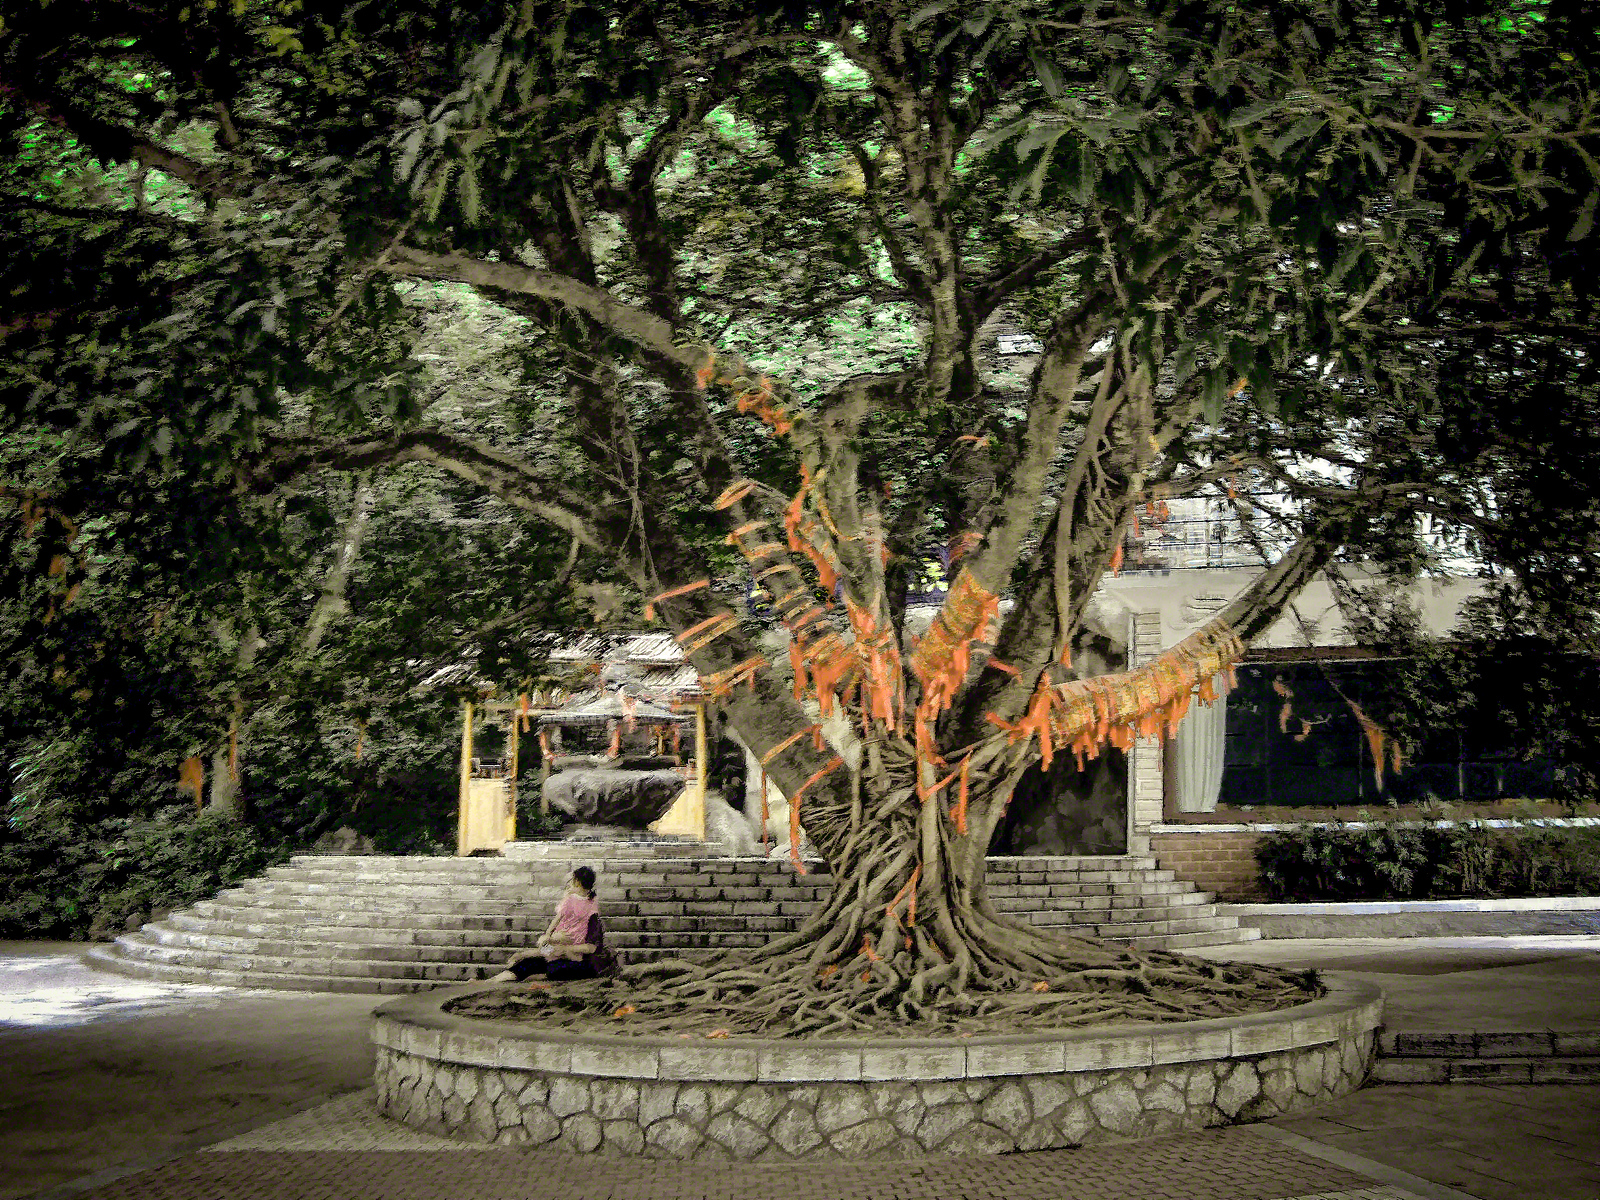 A Banyan wishing tree covered with red ribbons in Guilin China with Intentionally Lost and Kevin Wenning #intentionallylost